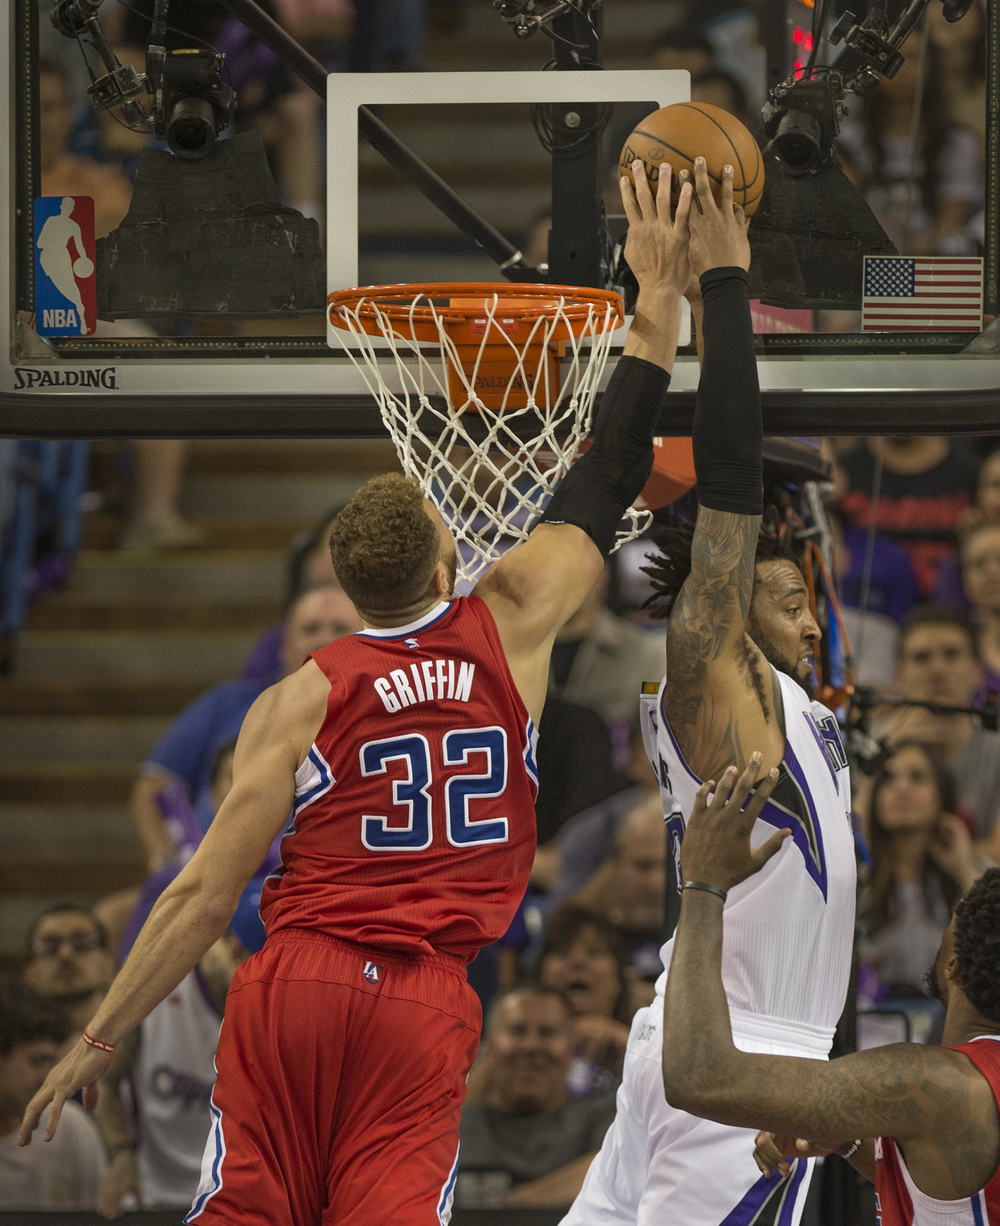 JV_031815_KINGS_CLIPPERS 730.jpg